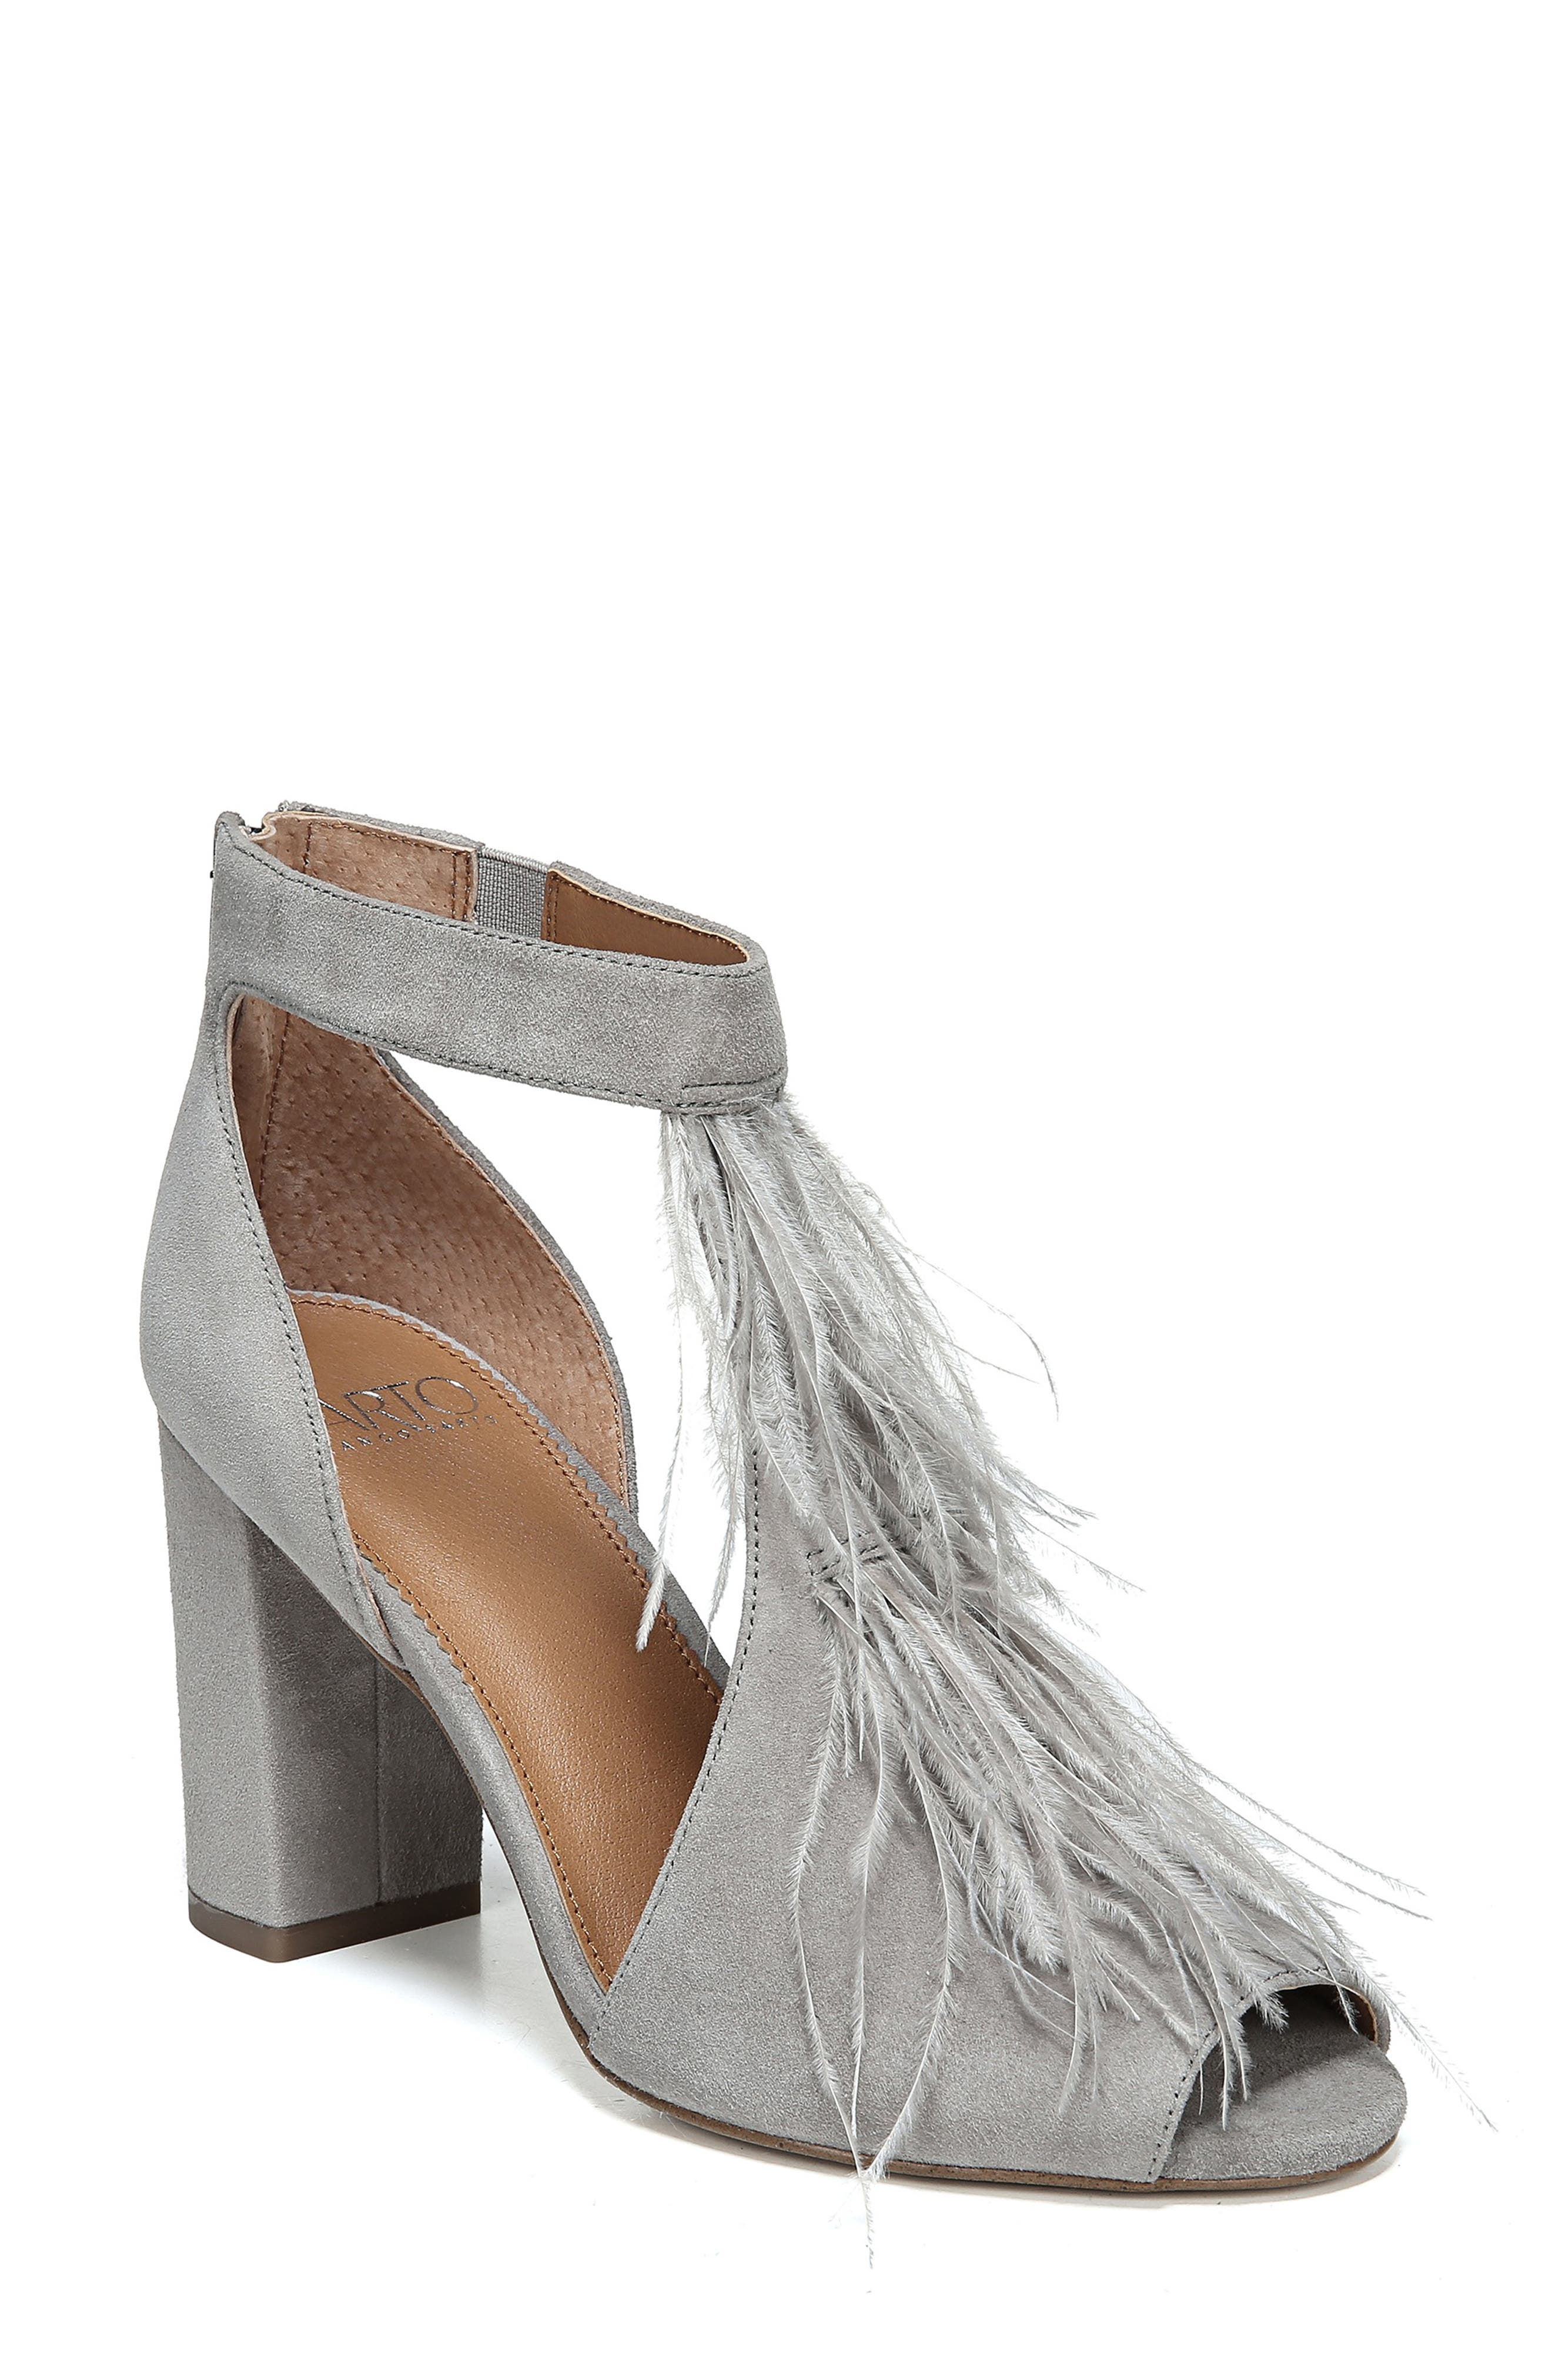 SARTO BY FRANCO SARTO, Olivette Sandal, Main thumbnail 1, color, GREYSTONE LEATHER